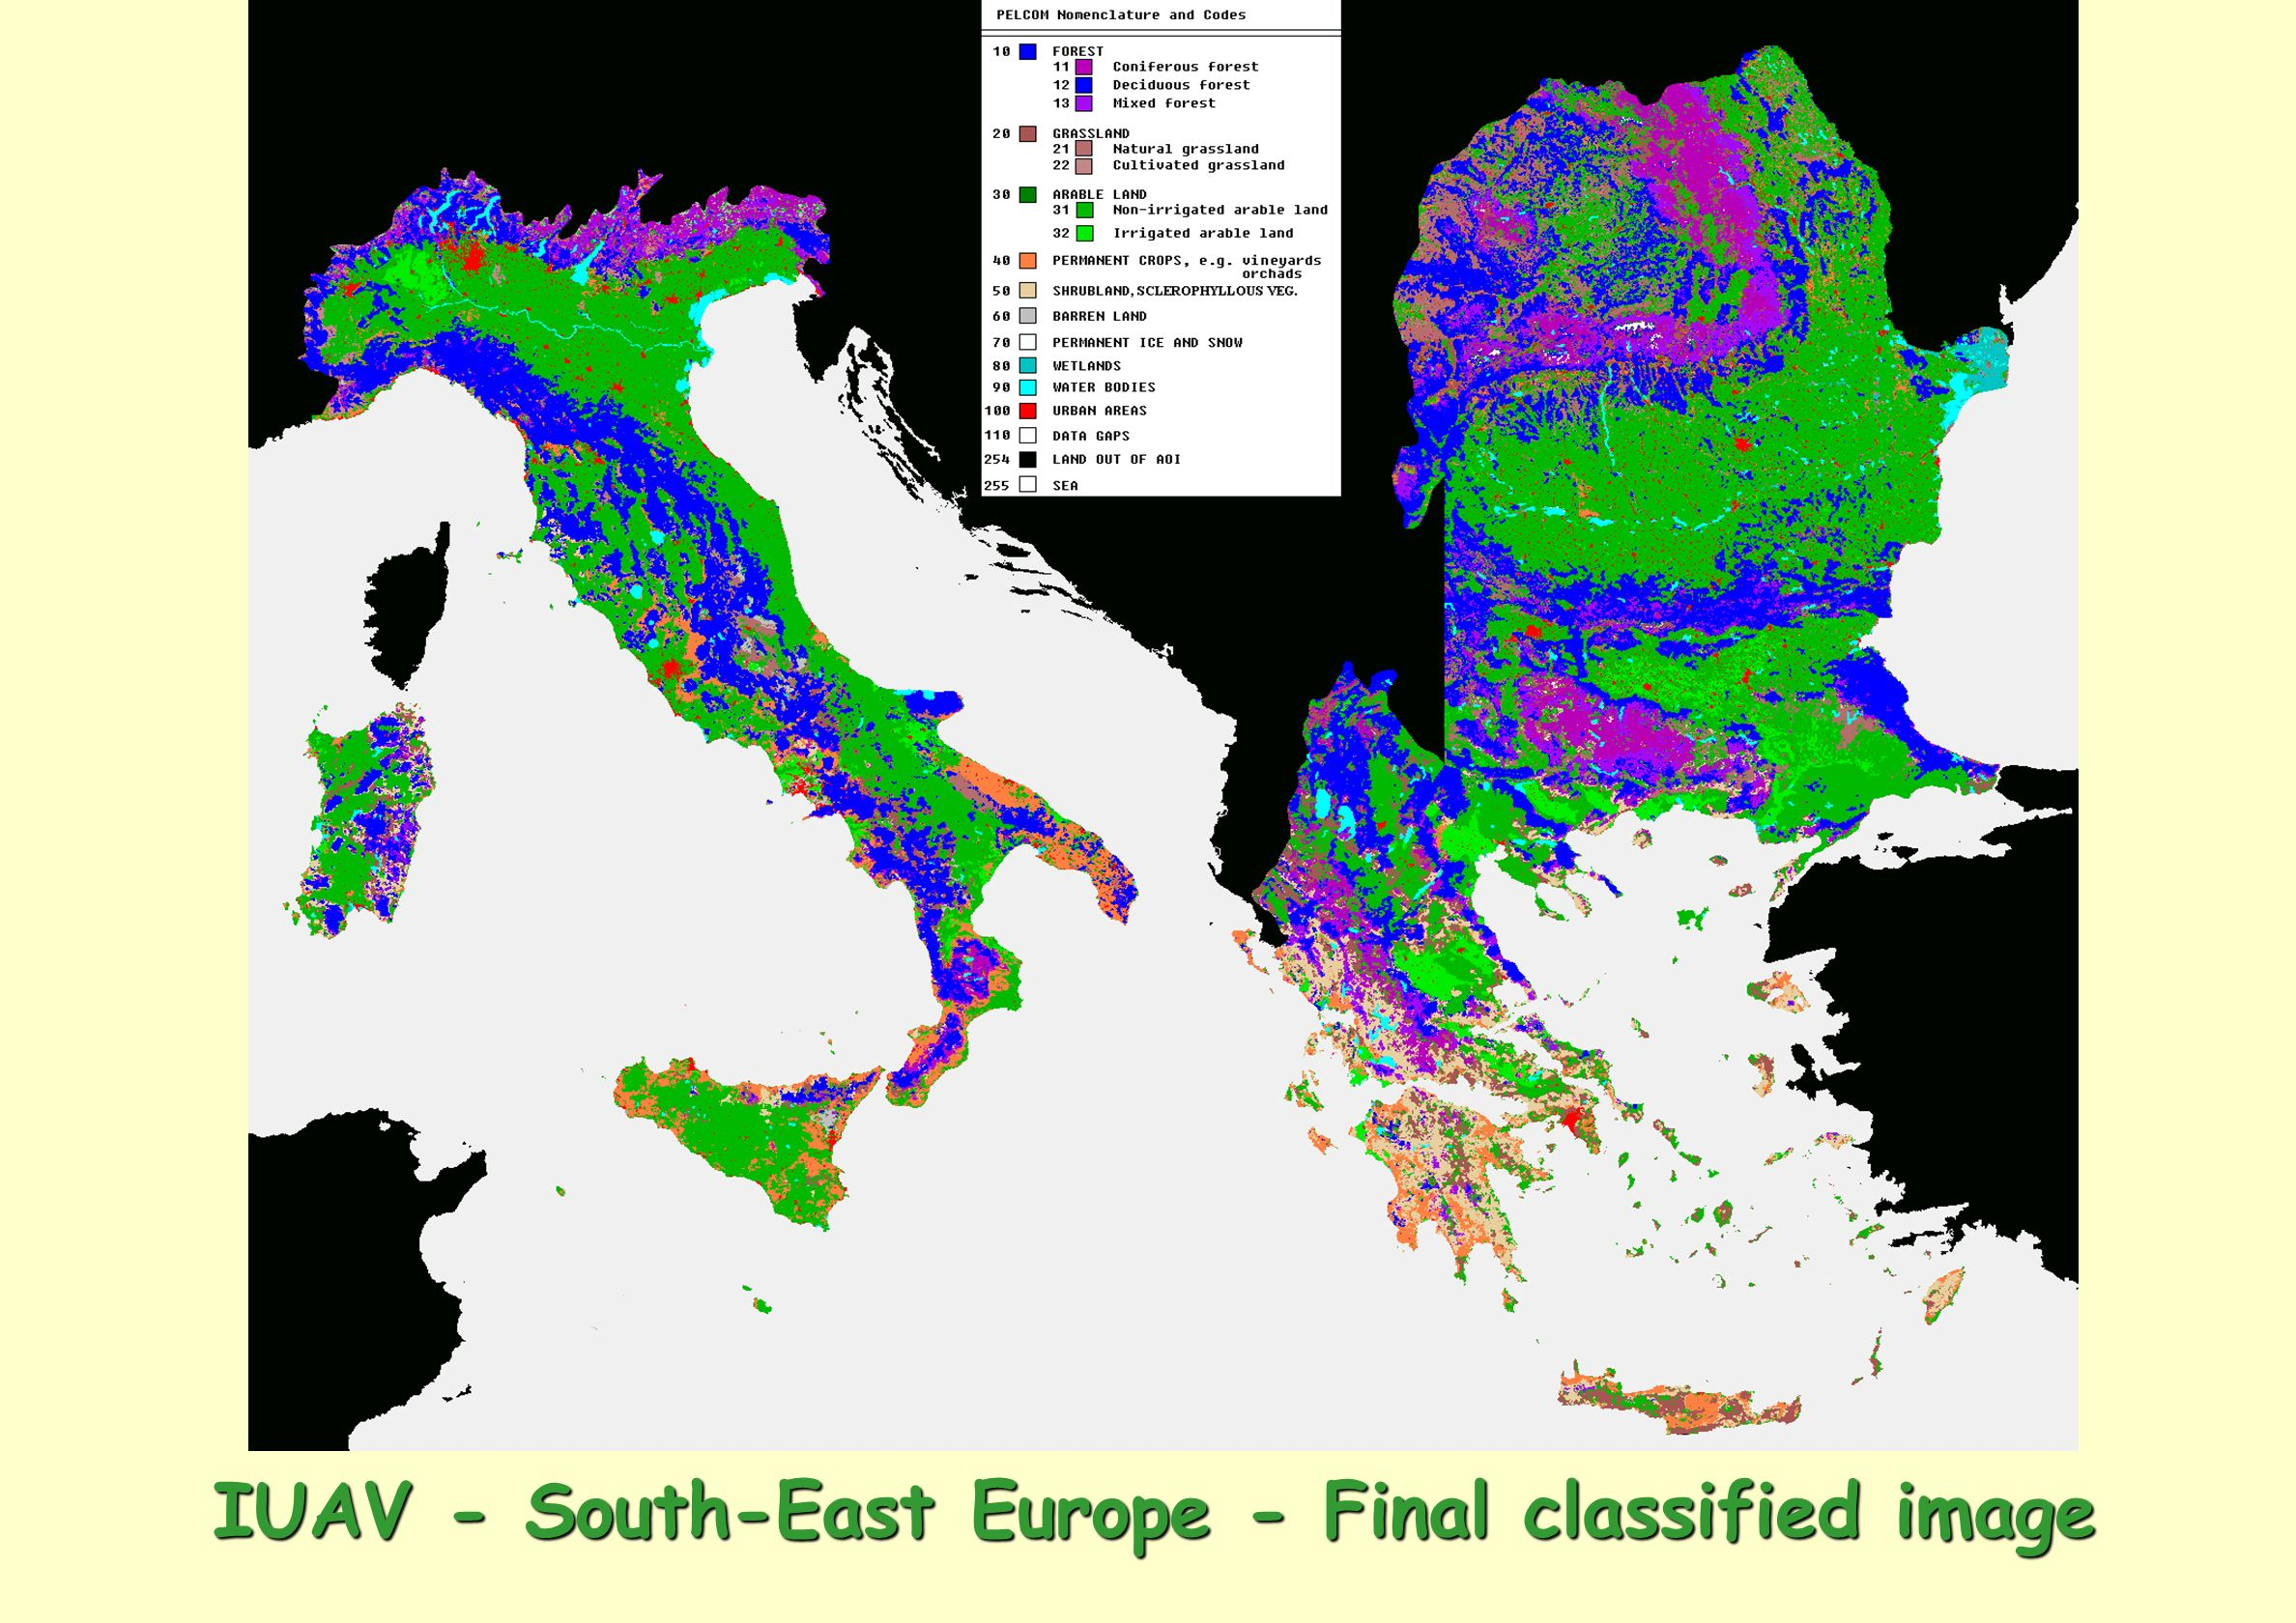 IUAV - South-East Europe - Final classified image